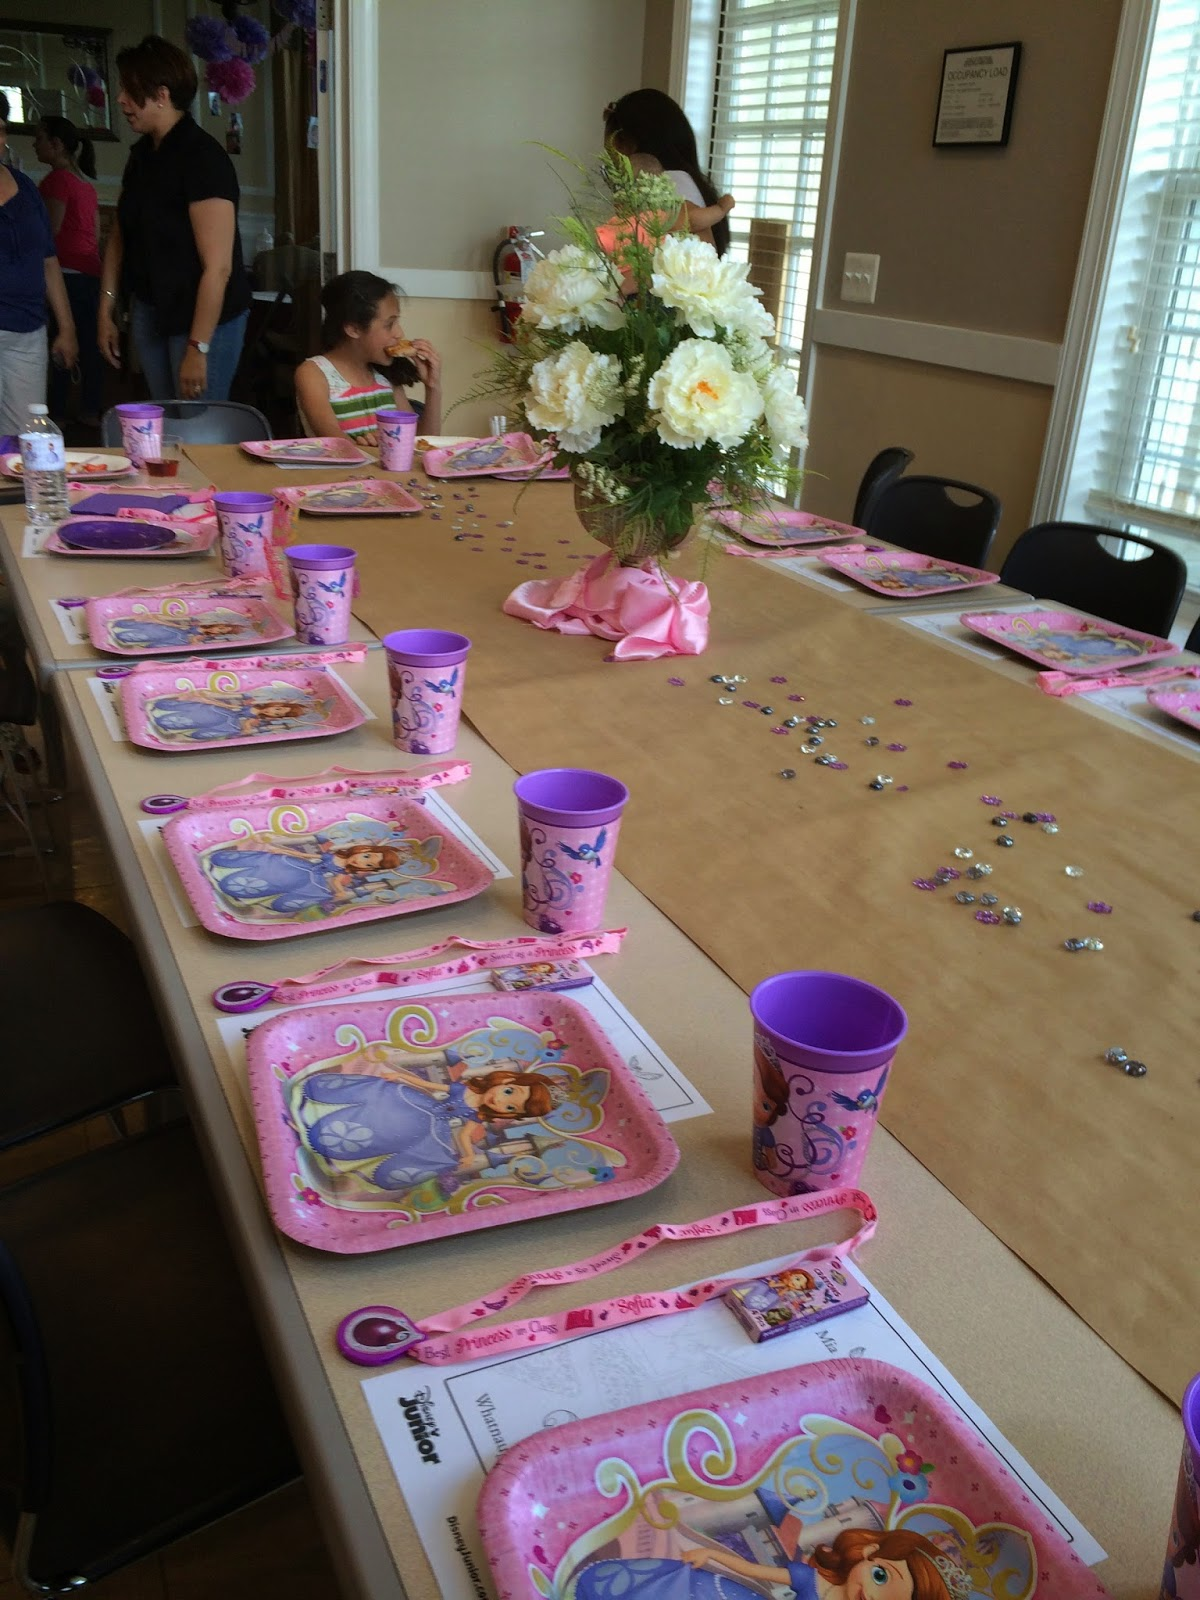 The Table Was Set With Coloring Pages Sofia First Crayons Amulets Plastic Cups And Well Wipeable Surfaces Lol